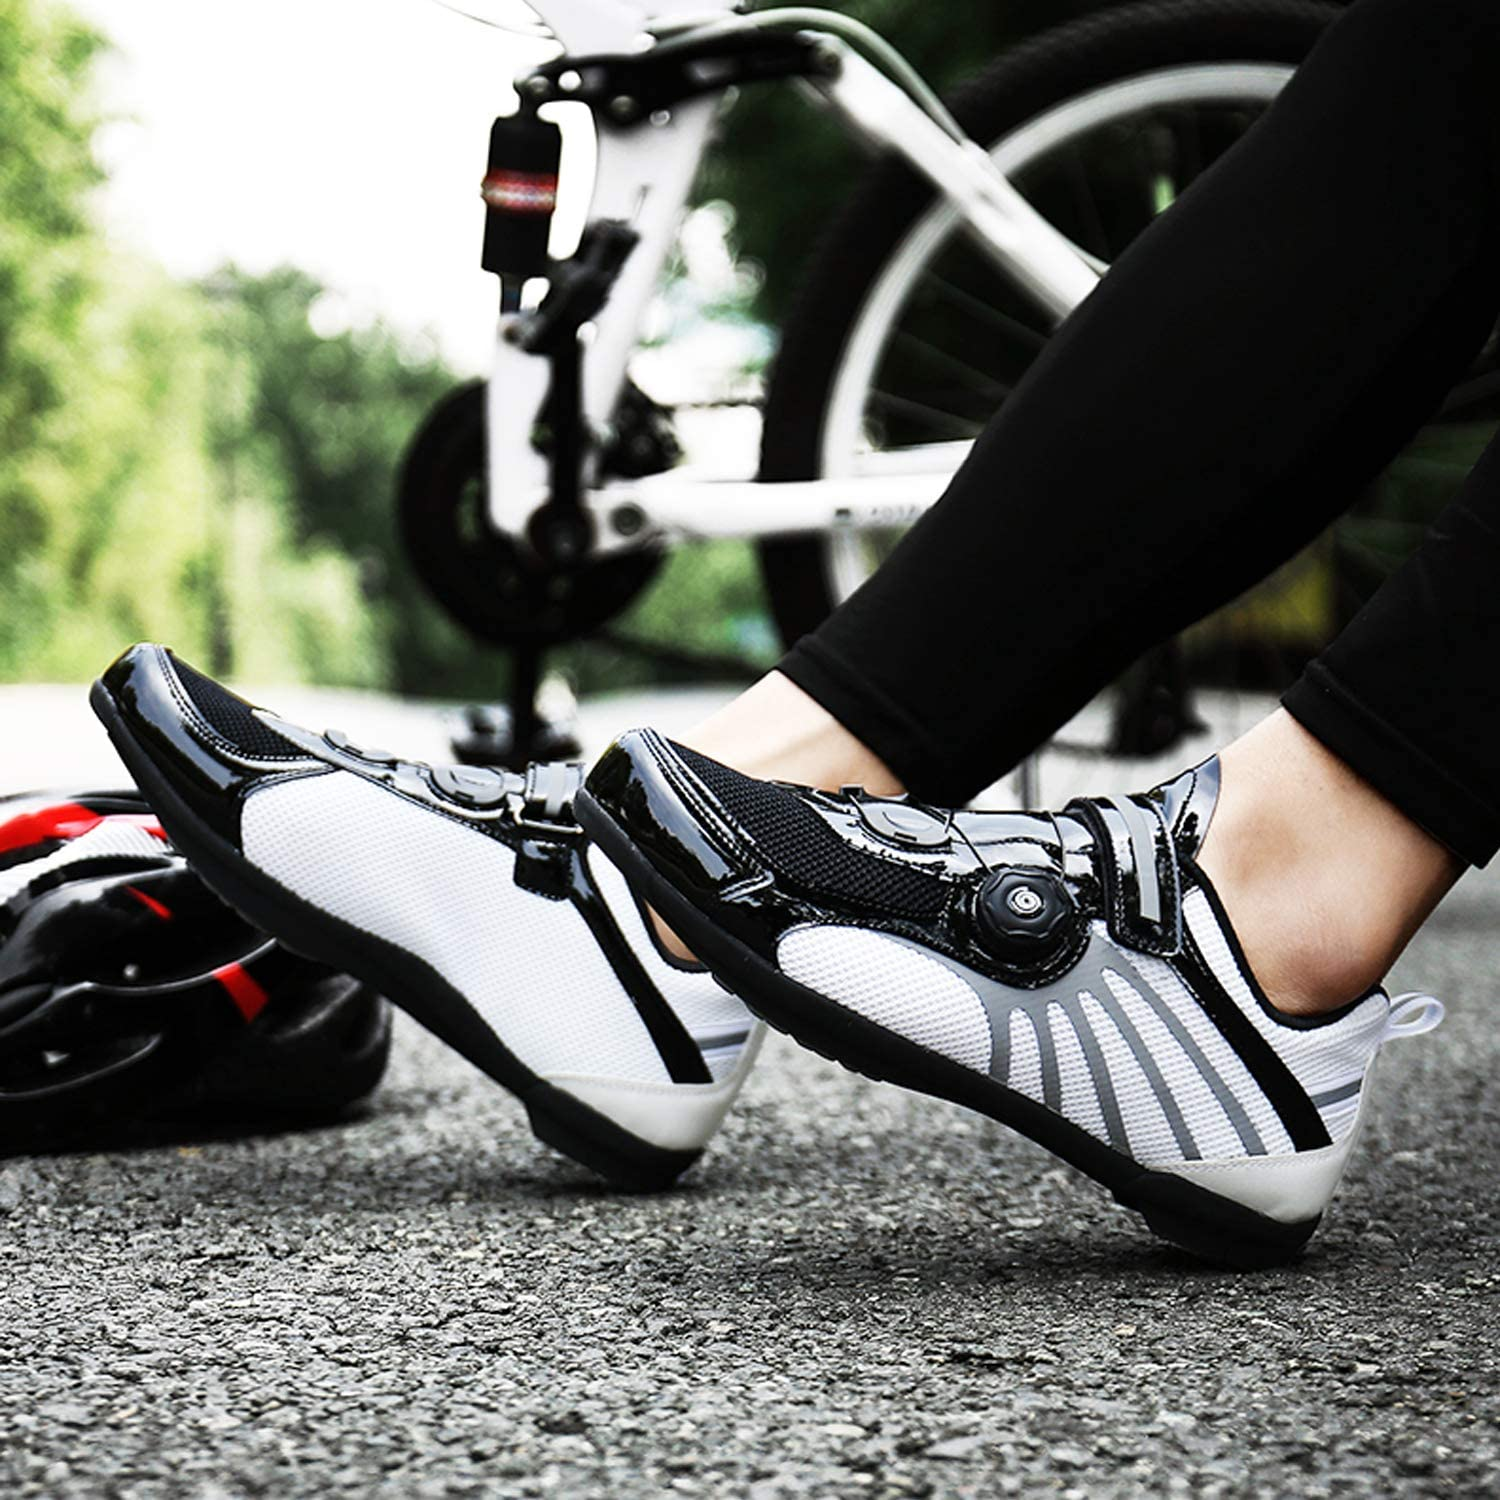 Unisex Riding Sneaker Compatible with+SPD Cleats for Outdoor Lock Pedal Bike SYLPHID Men/'s Cycling Shoes Women/'s Road Bike Spin Shoes